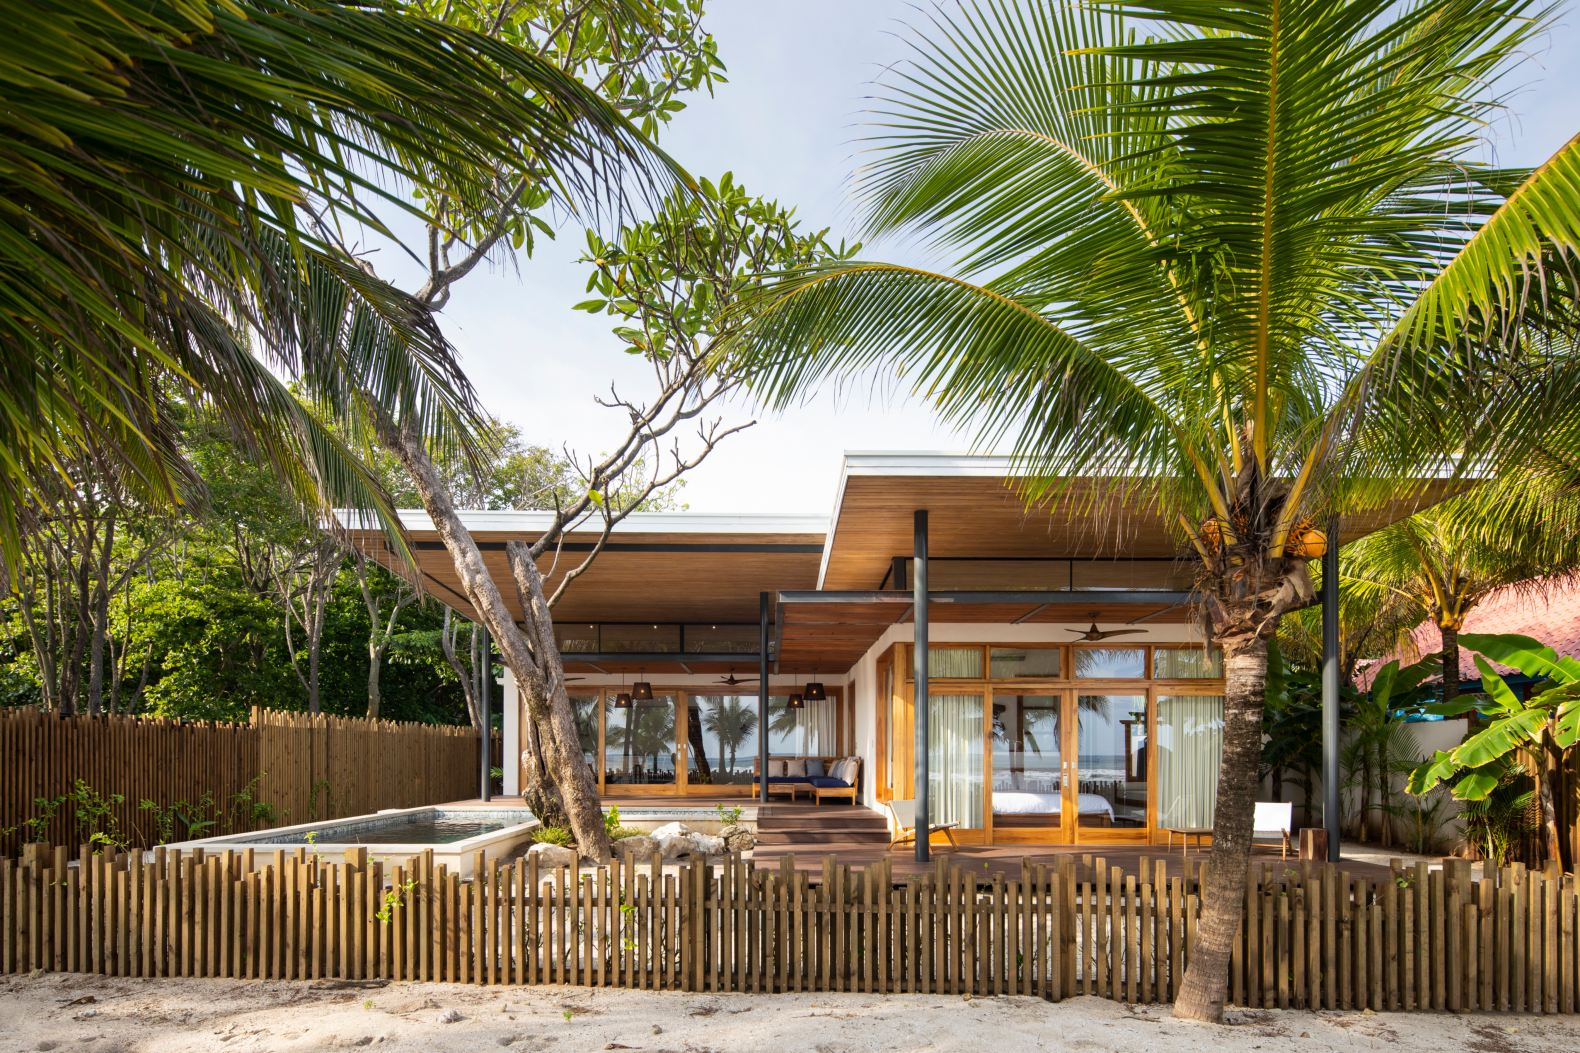 Stunning Costa Rican beach home uses passive features to stay cool